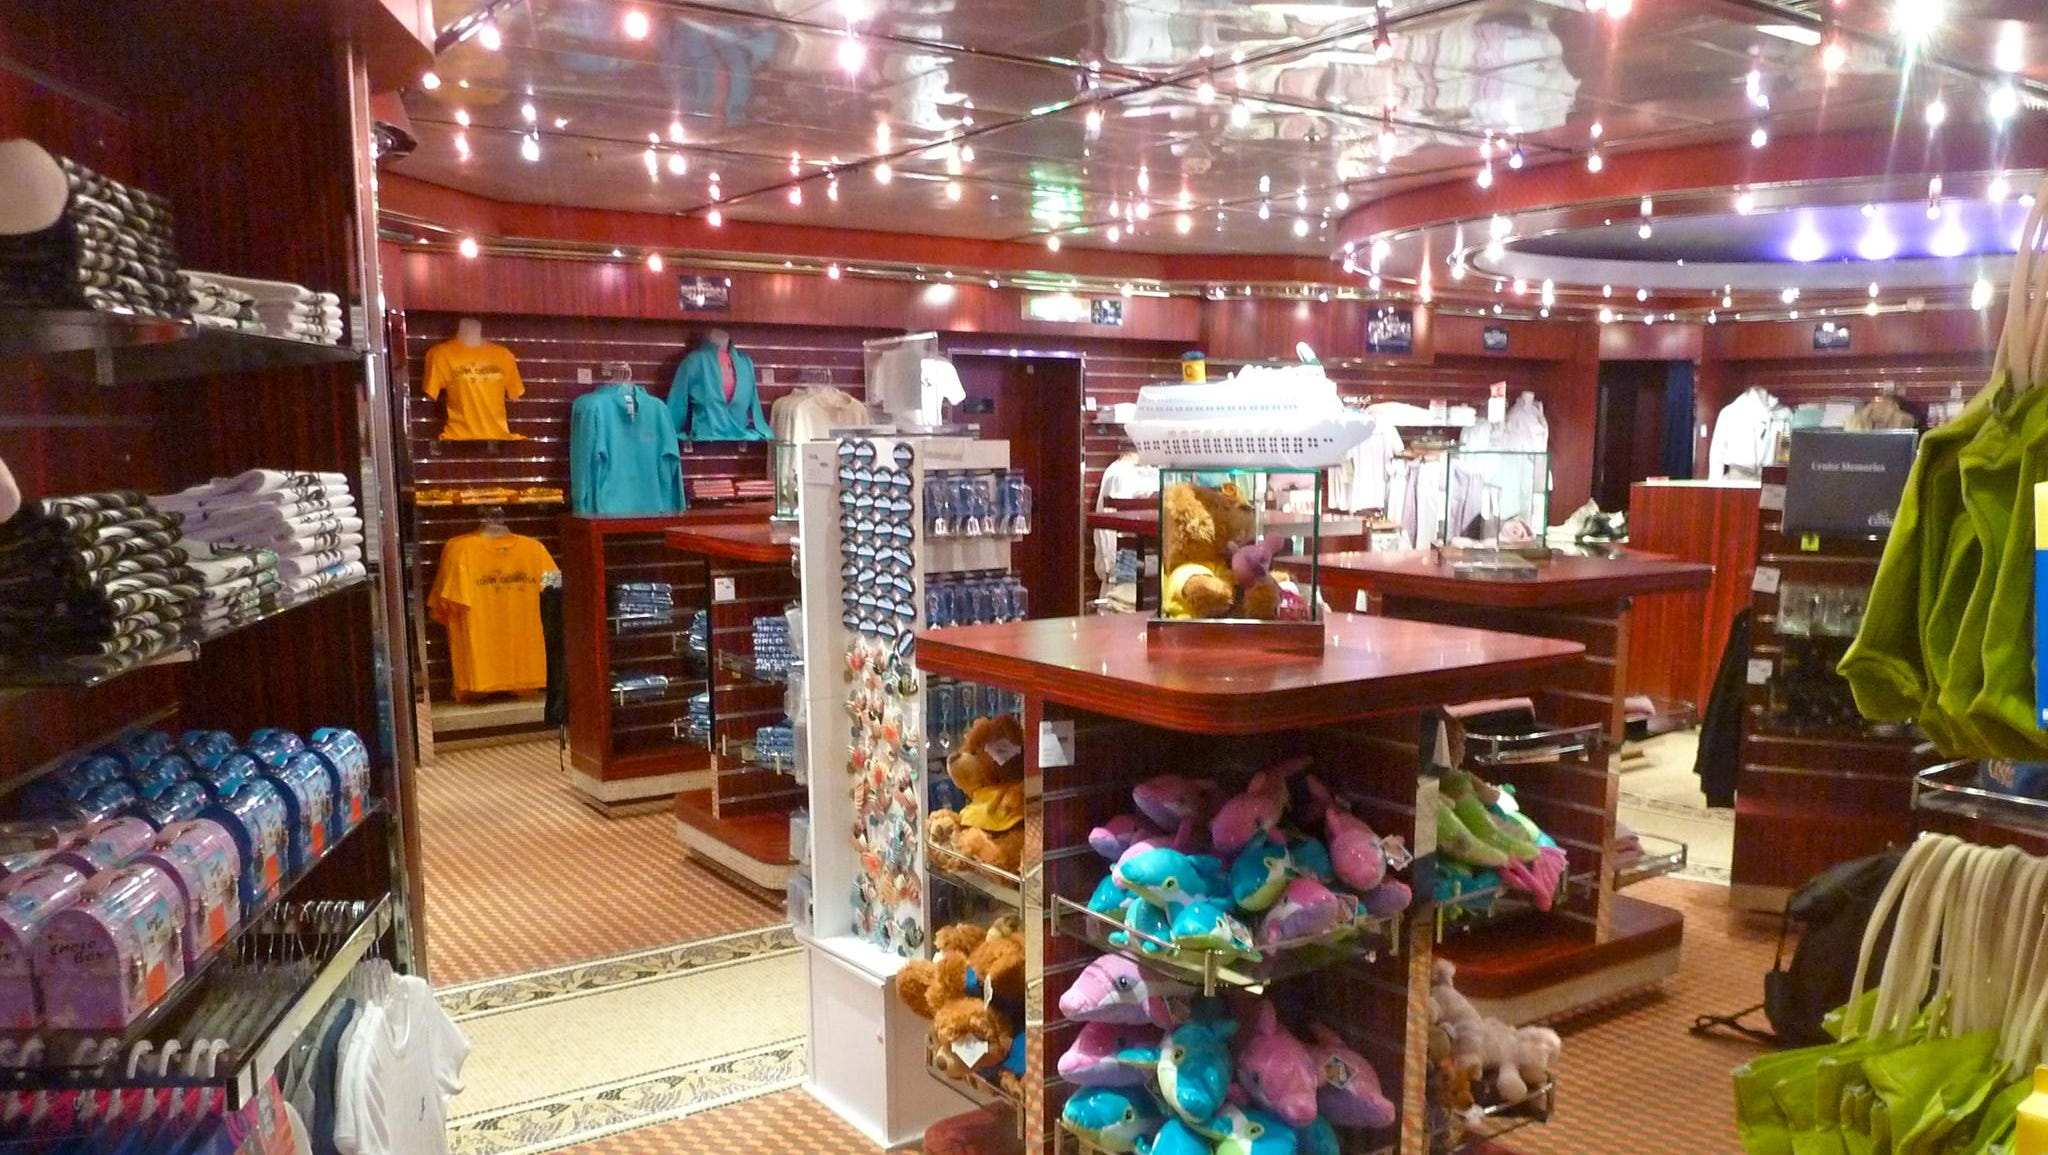 Here is one of the sundry and clothing shops in the Galleria shopping area.